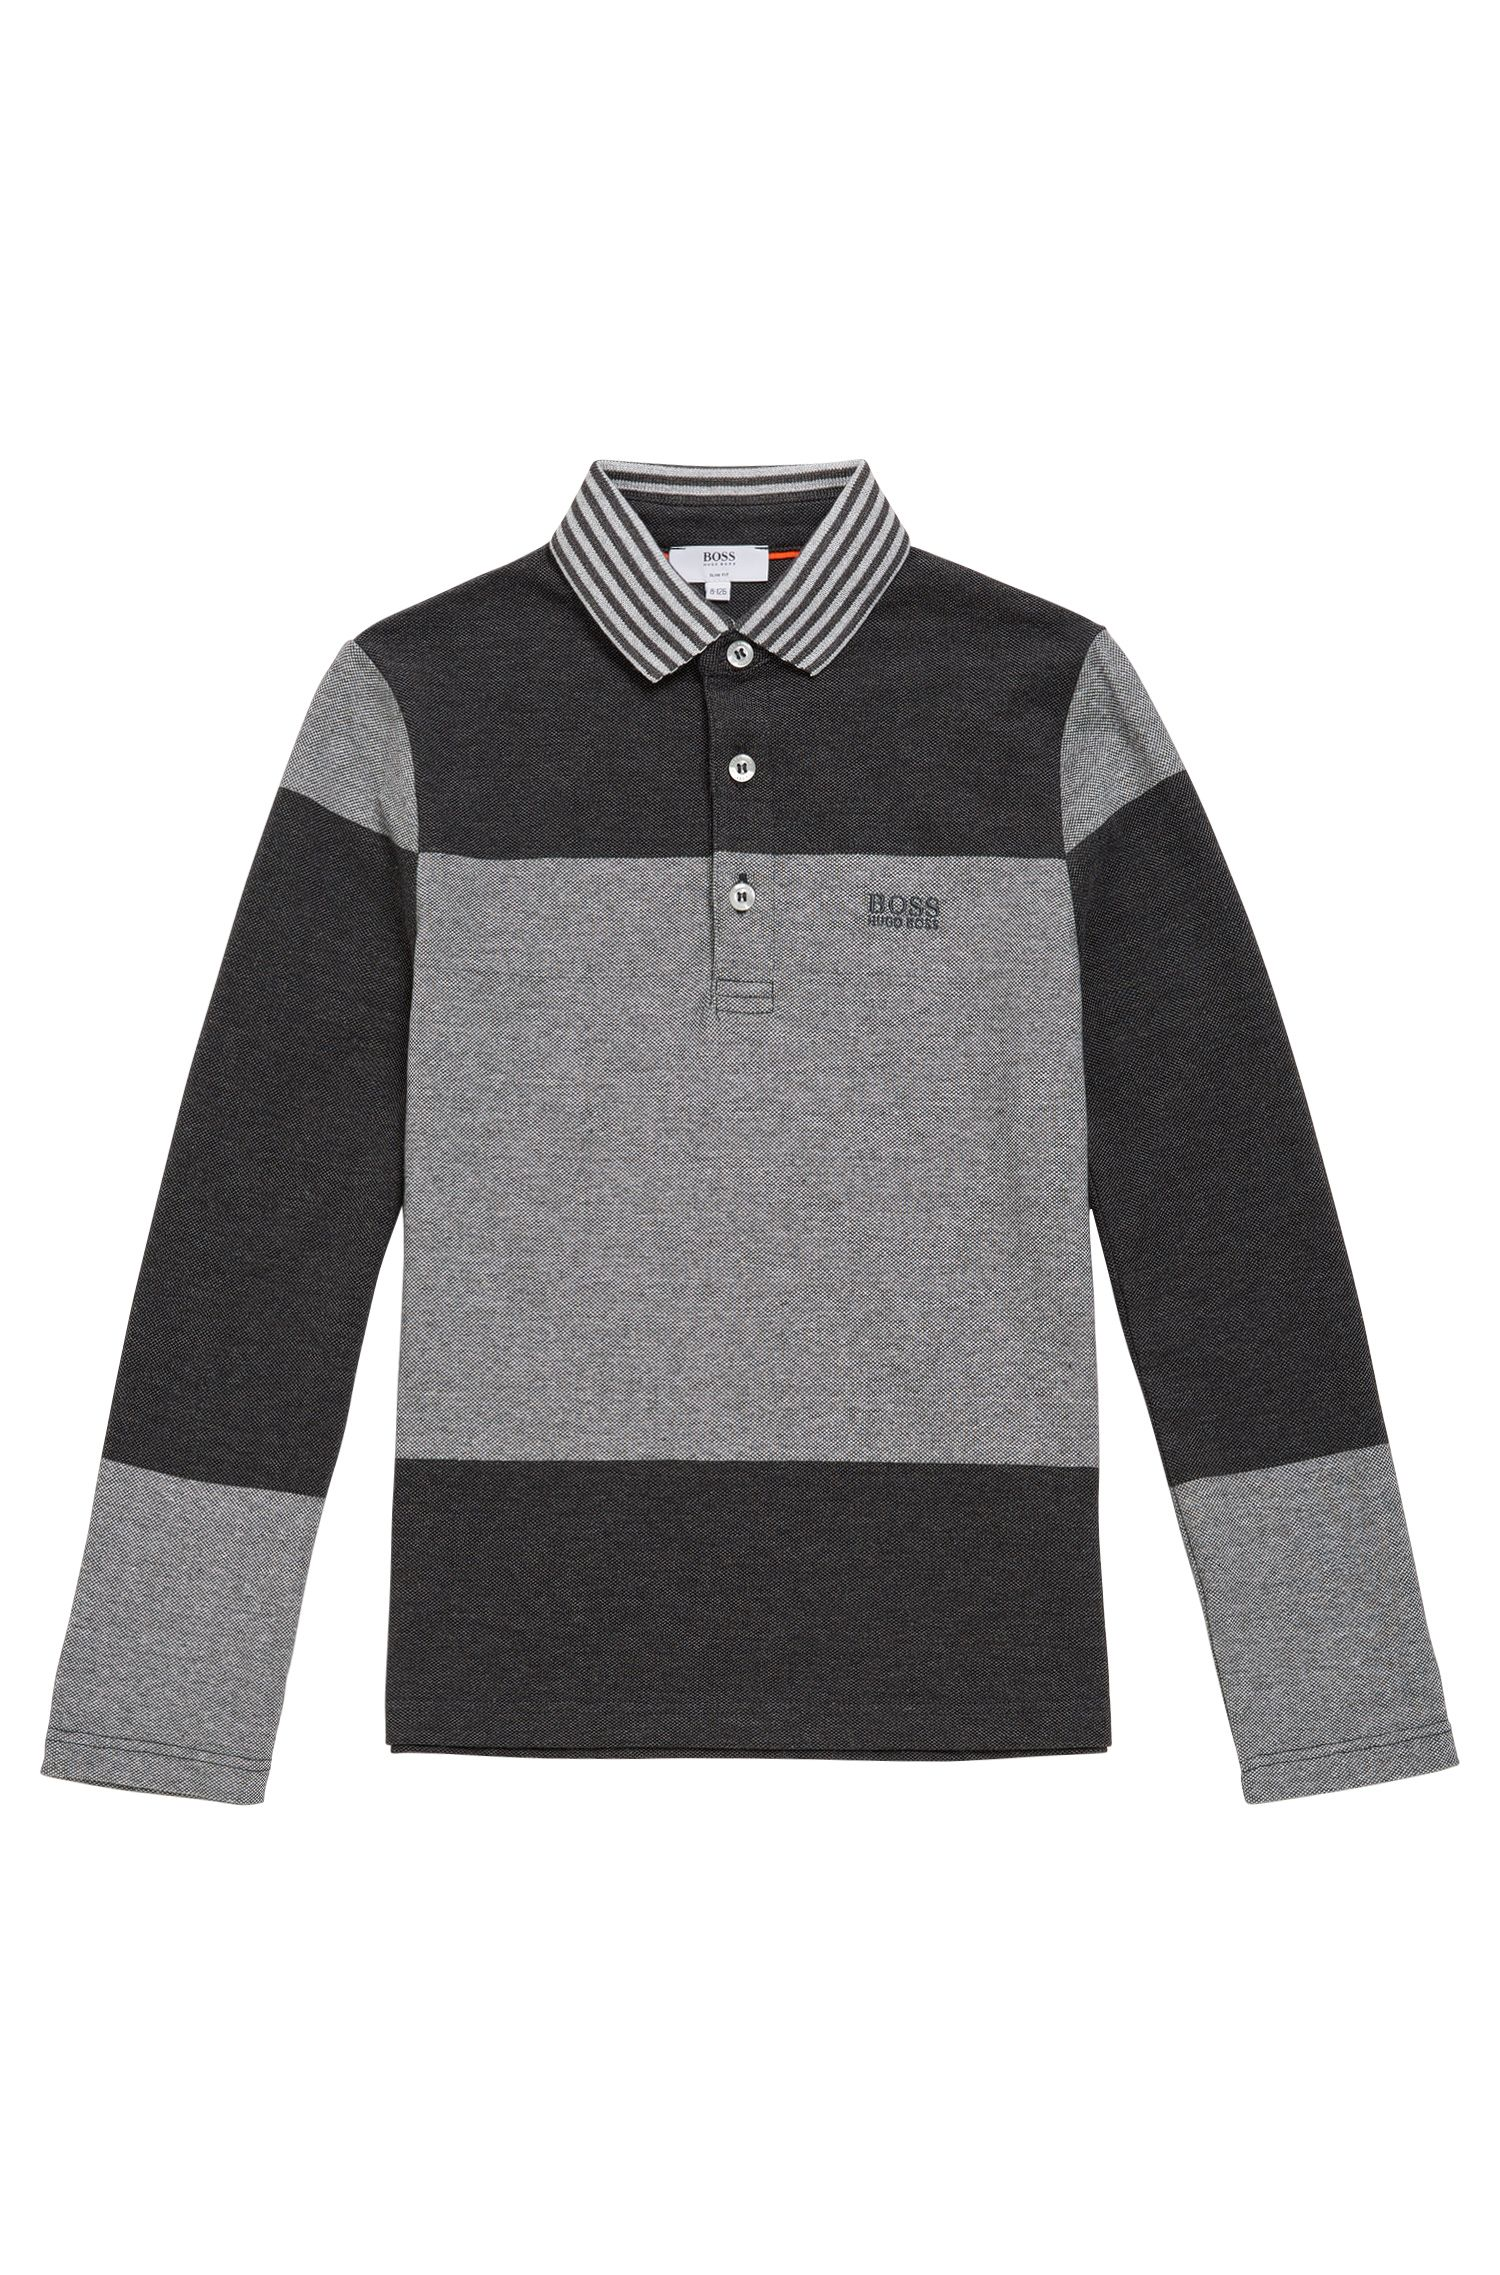 Kids' long-sleeved shirt made from cotton in polo style: 'J25996'